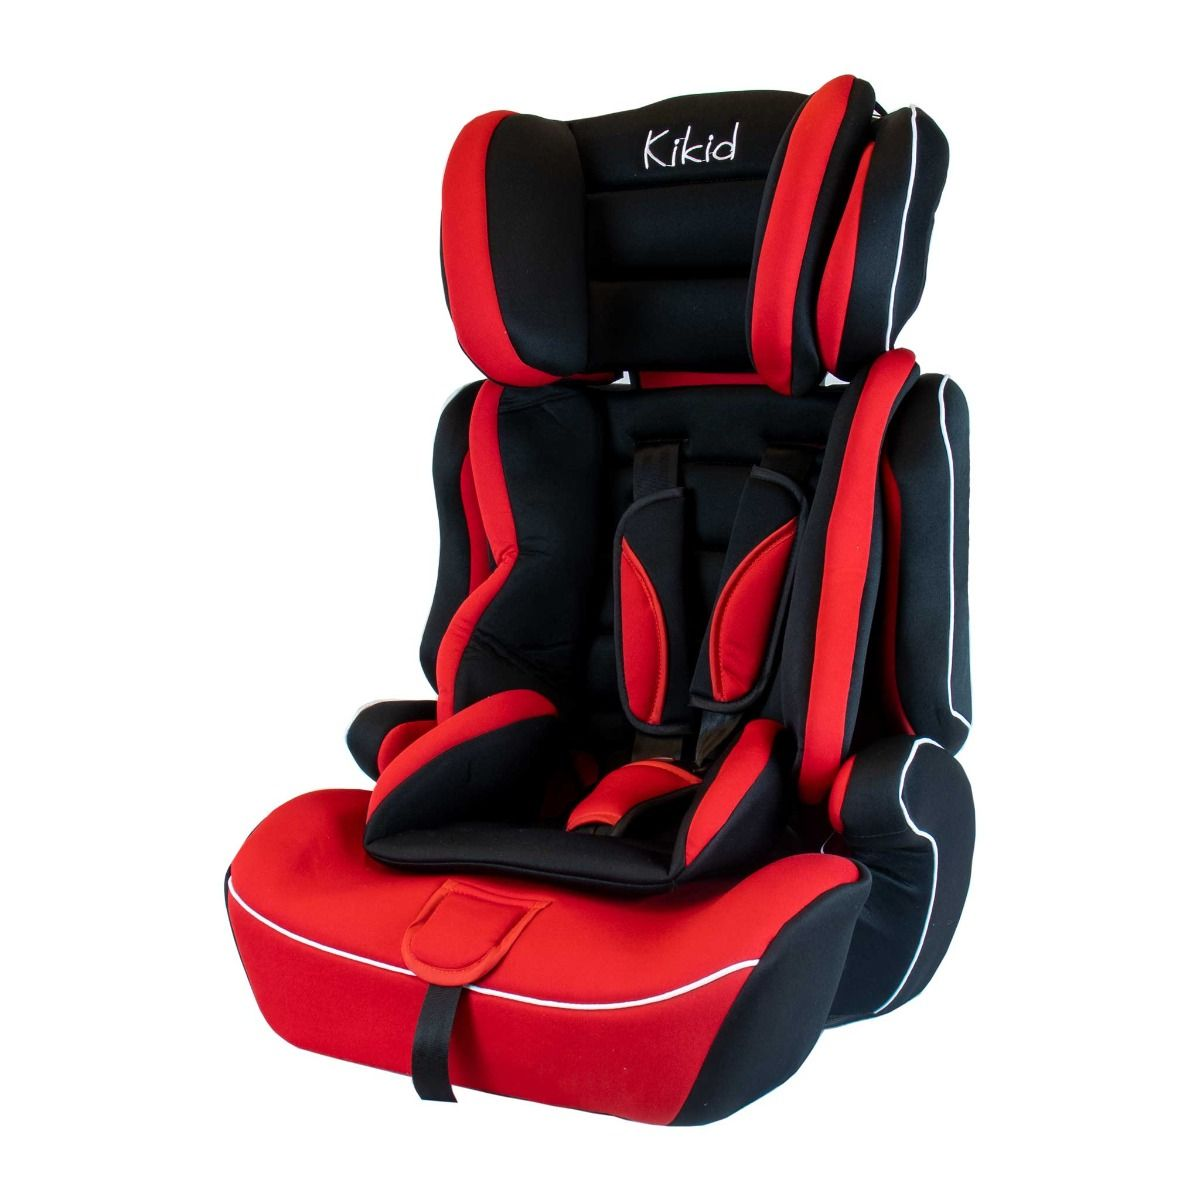 Kikid Car Seat Basic Red, 9-36 kg